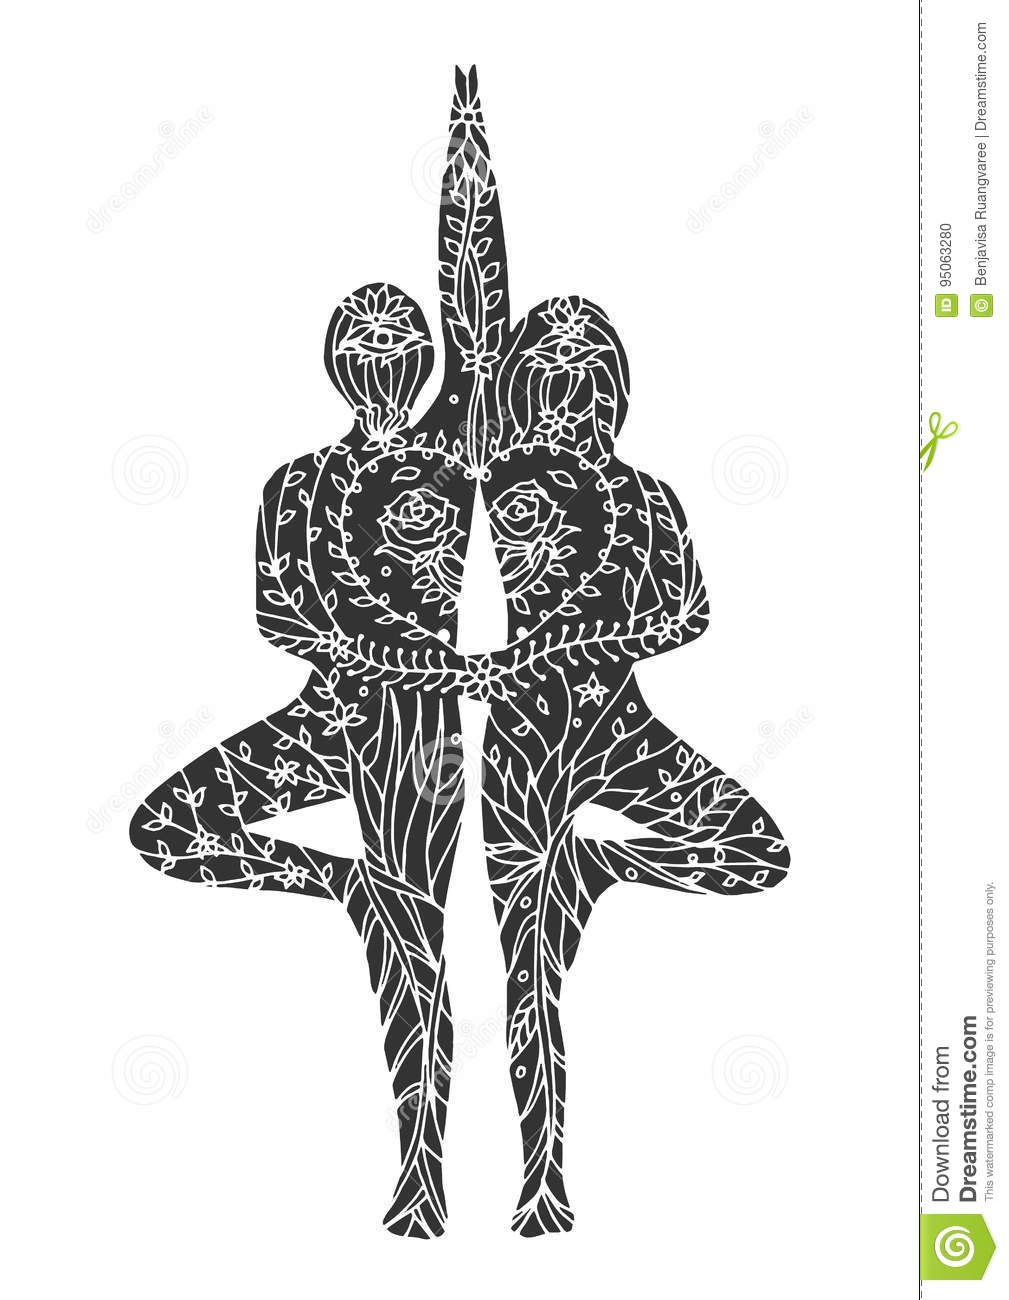 Couple tree pose yoga 7 chakra vector flower floral drawing